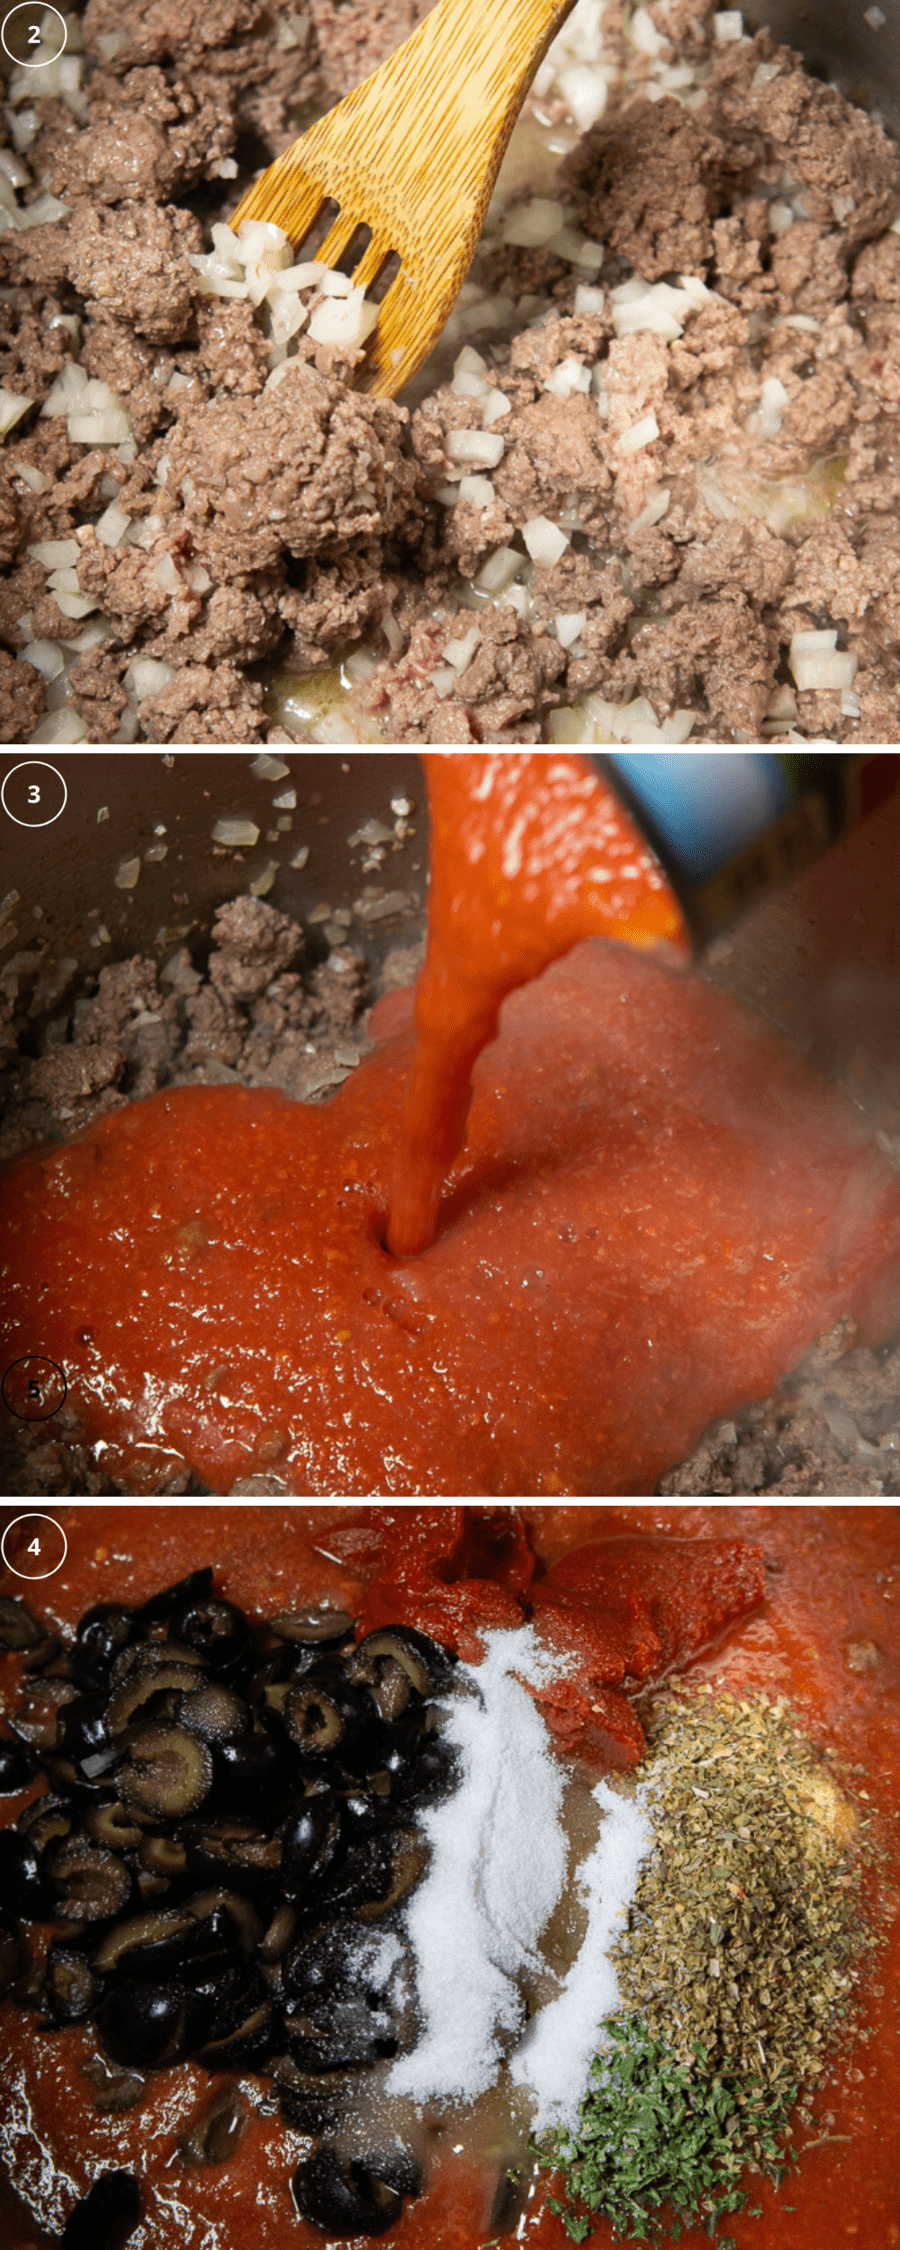 a pot of ground beef with onions cooking above a second image of tomato puree being poured into it, above a third image of spices, herbs, and olives being added to it.